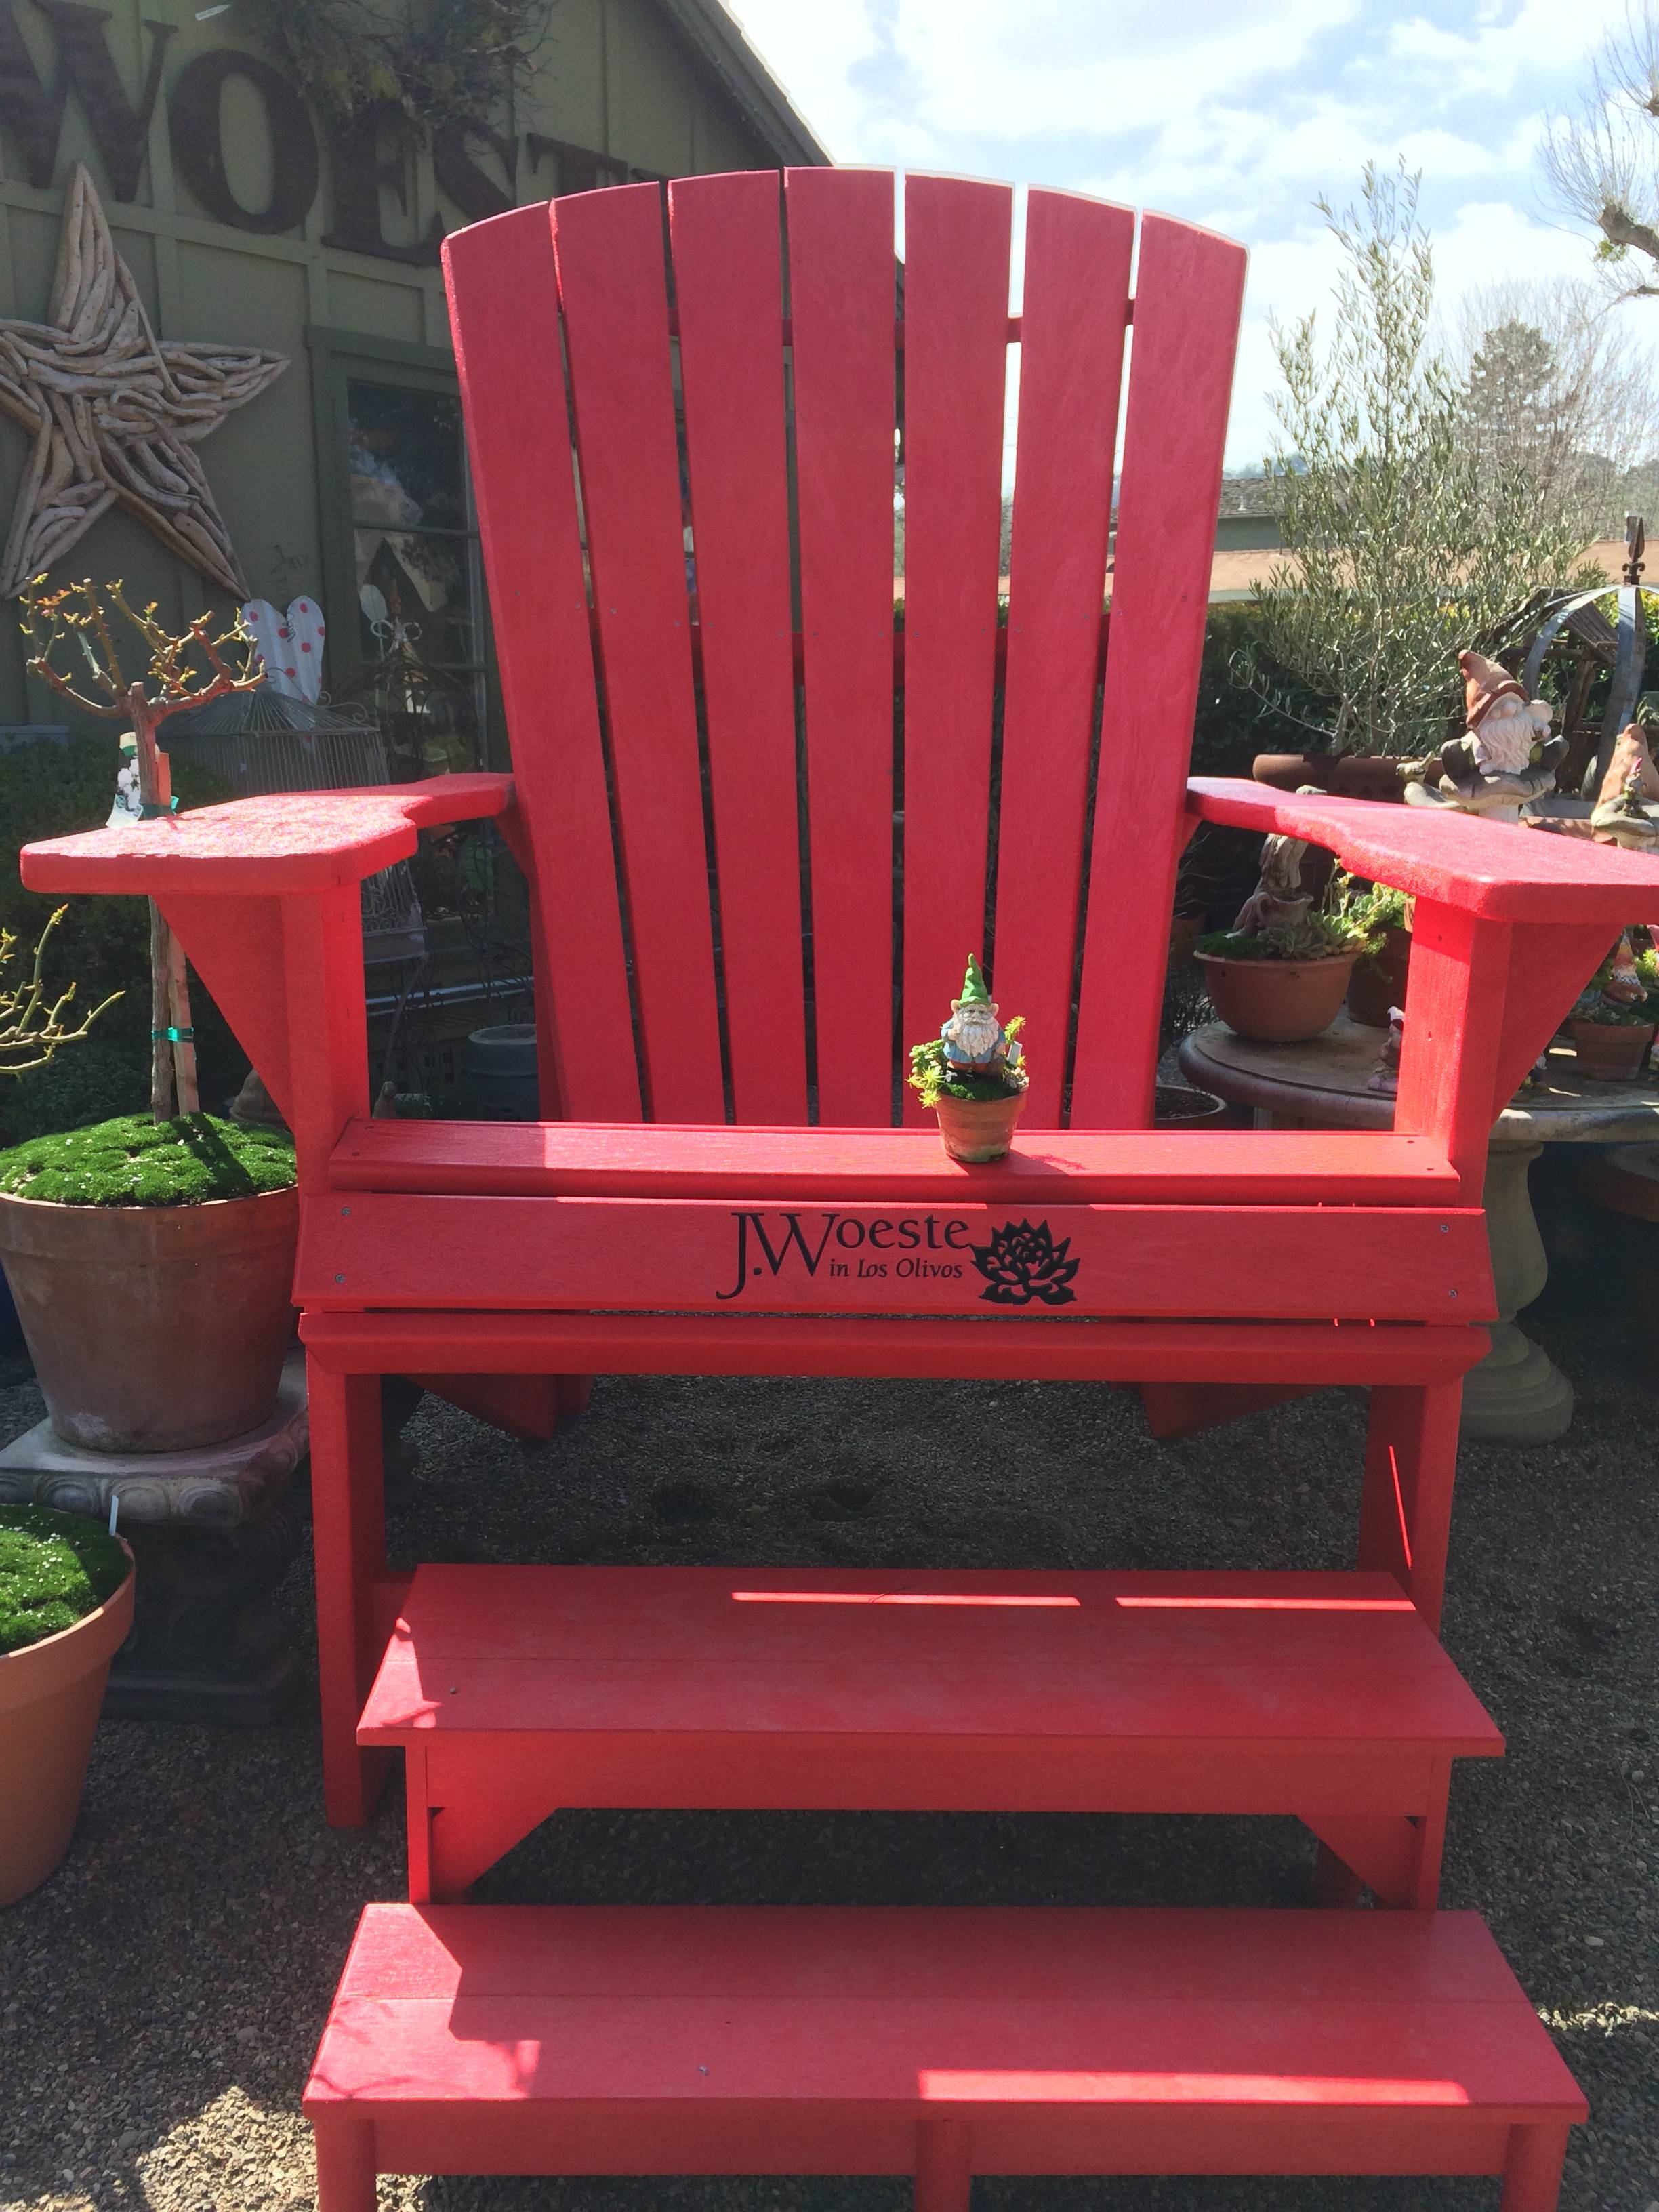 Speechless Sunday: A Very Big Red Chair!